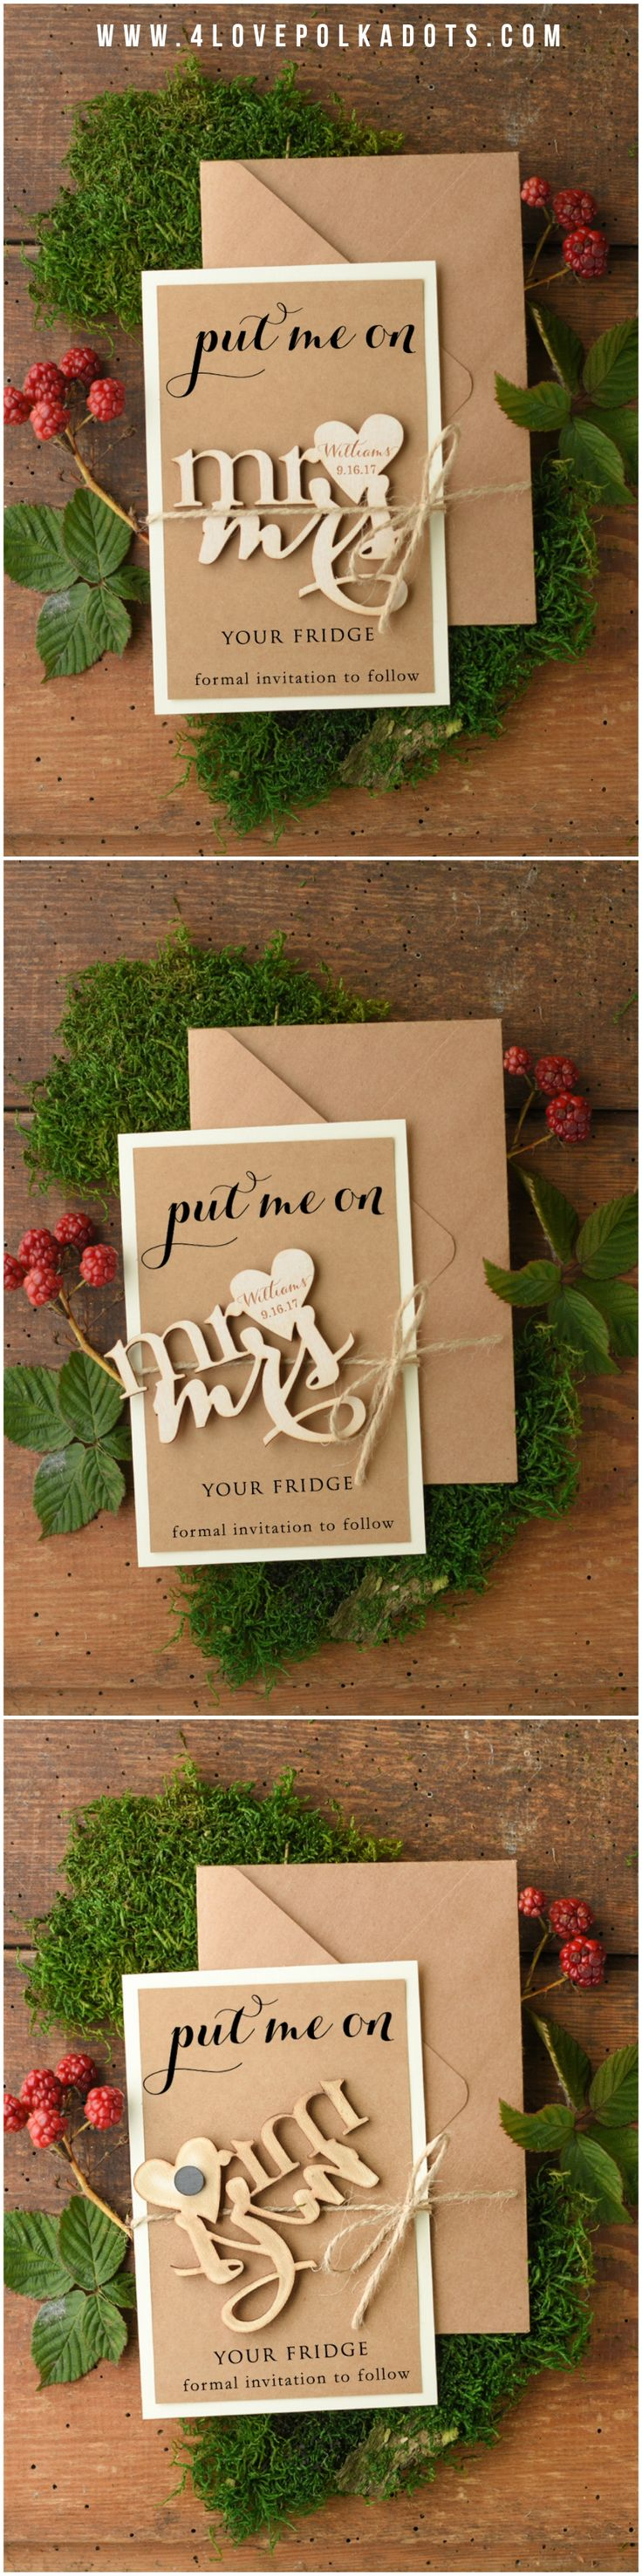 Put me on your fridge! Mr & Mrs Wooden Save the Date Magnet